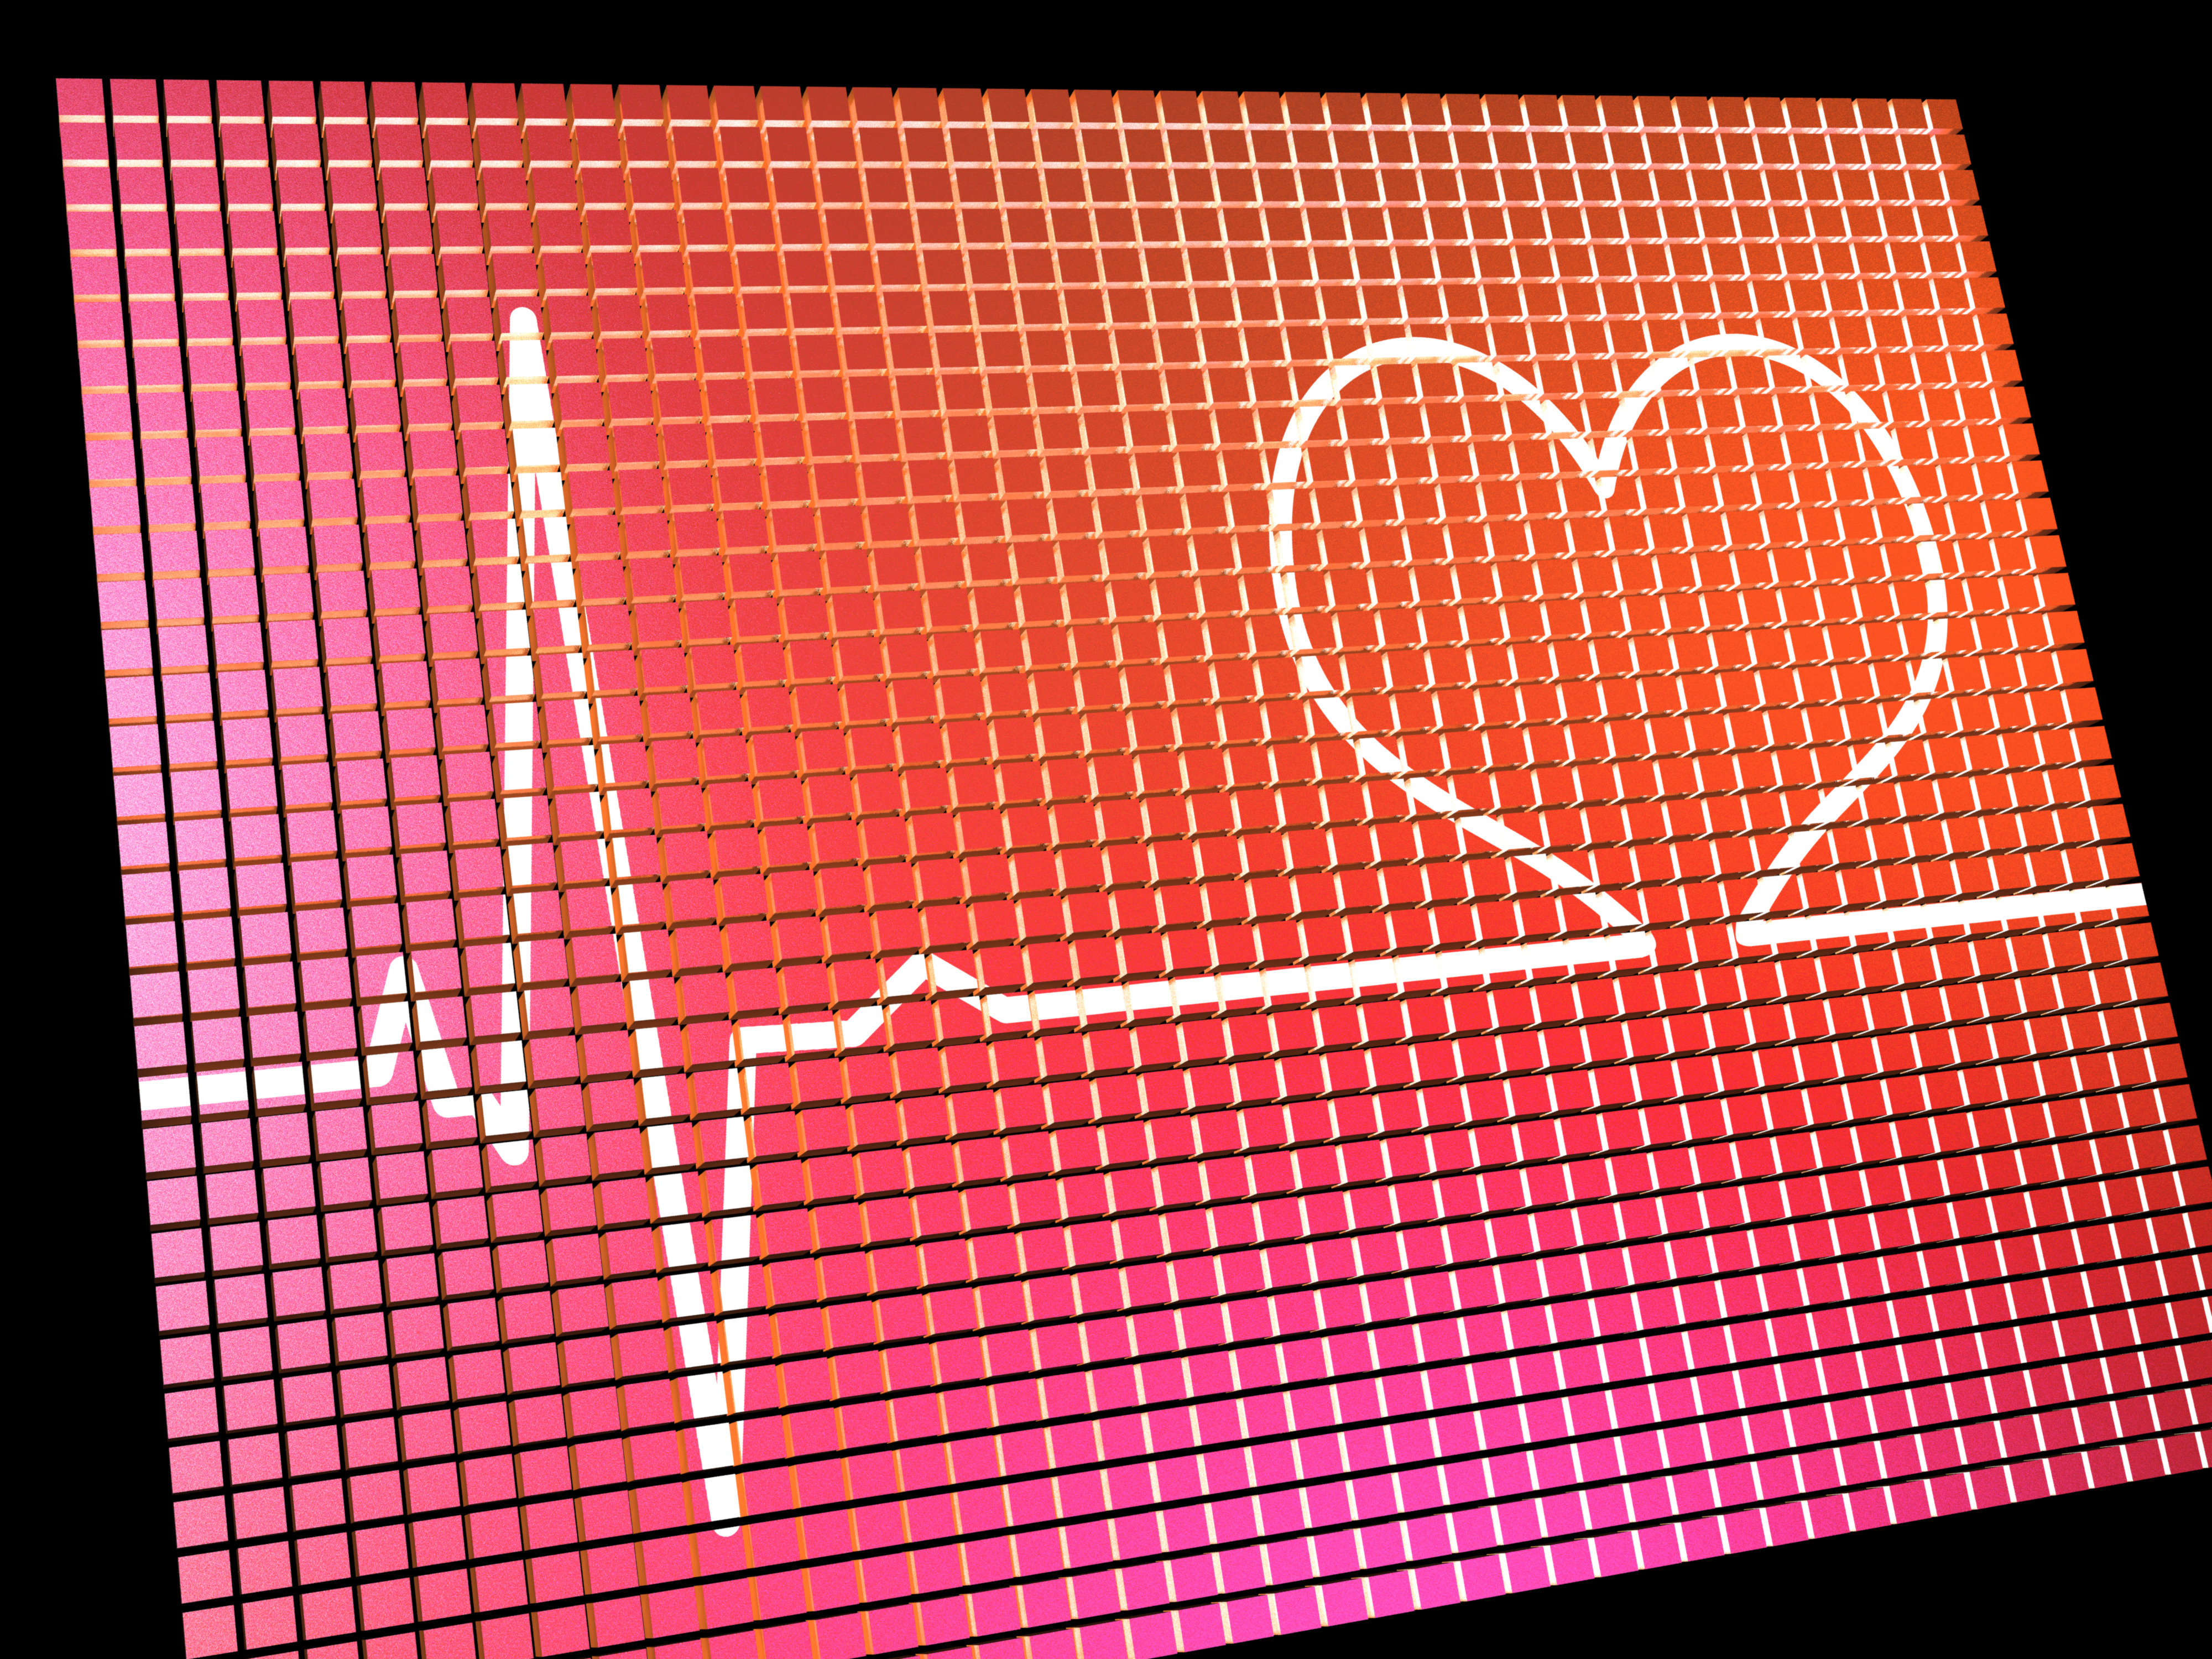 Heart rate and blood pressure regulation